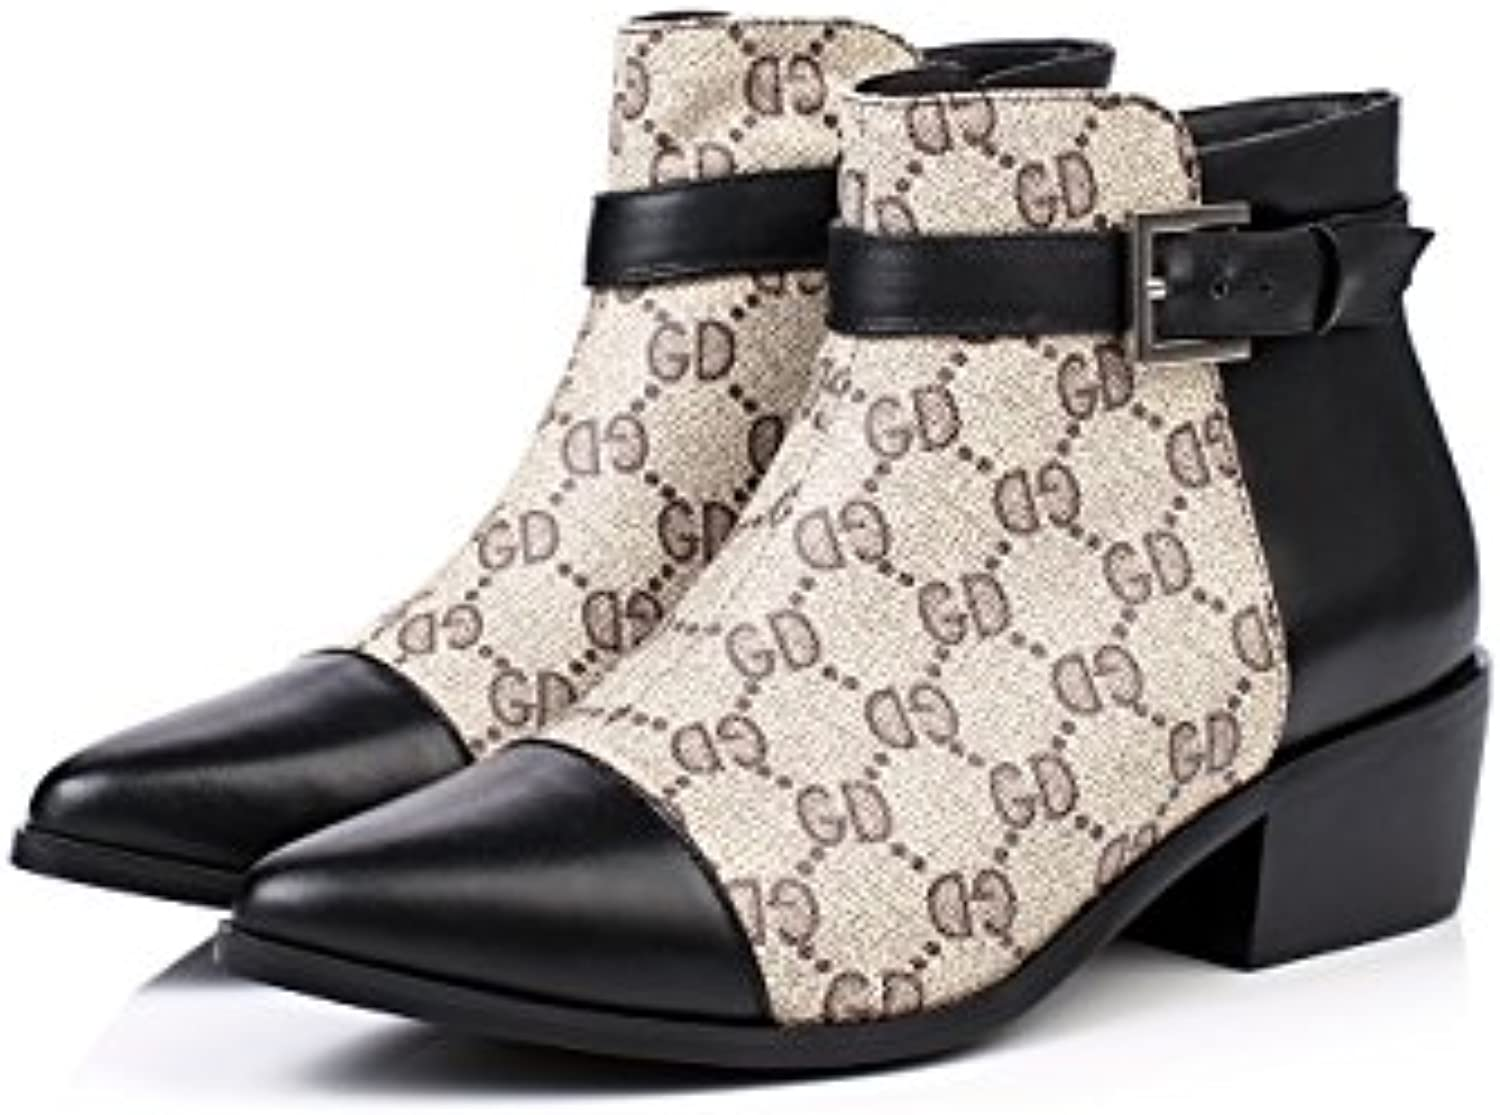 965662aa43ef Women s Low Heel Pointed Toe Ankle Buckle Print Leather Dress Dress Dress  Boots (5.5 US